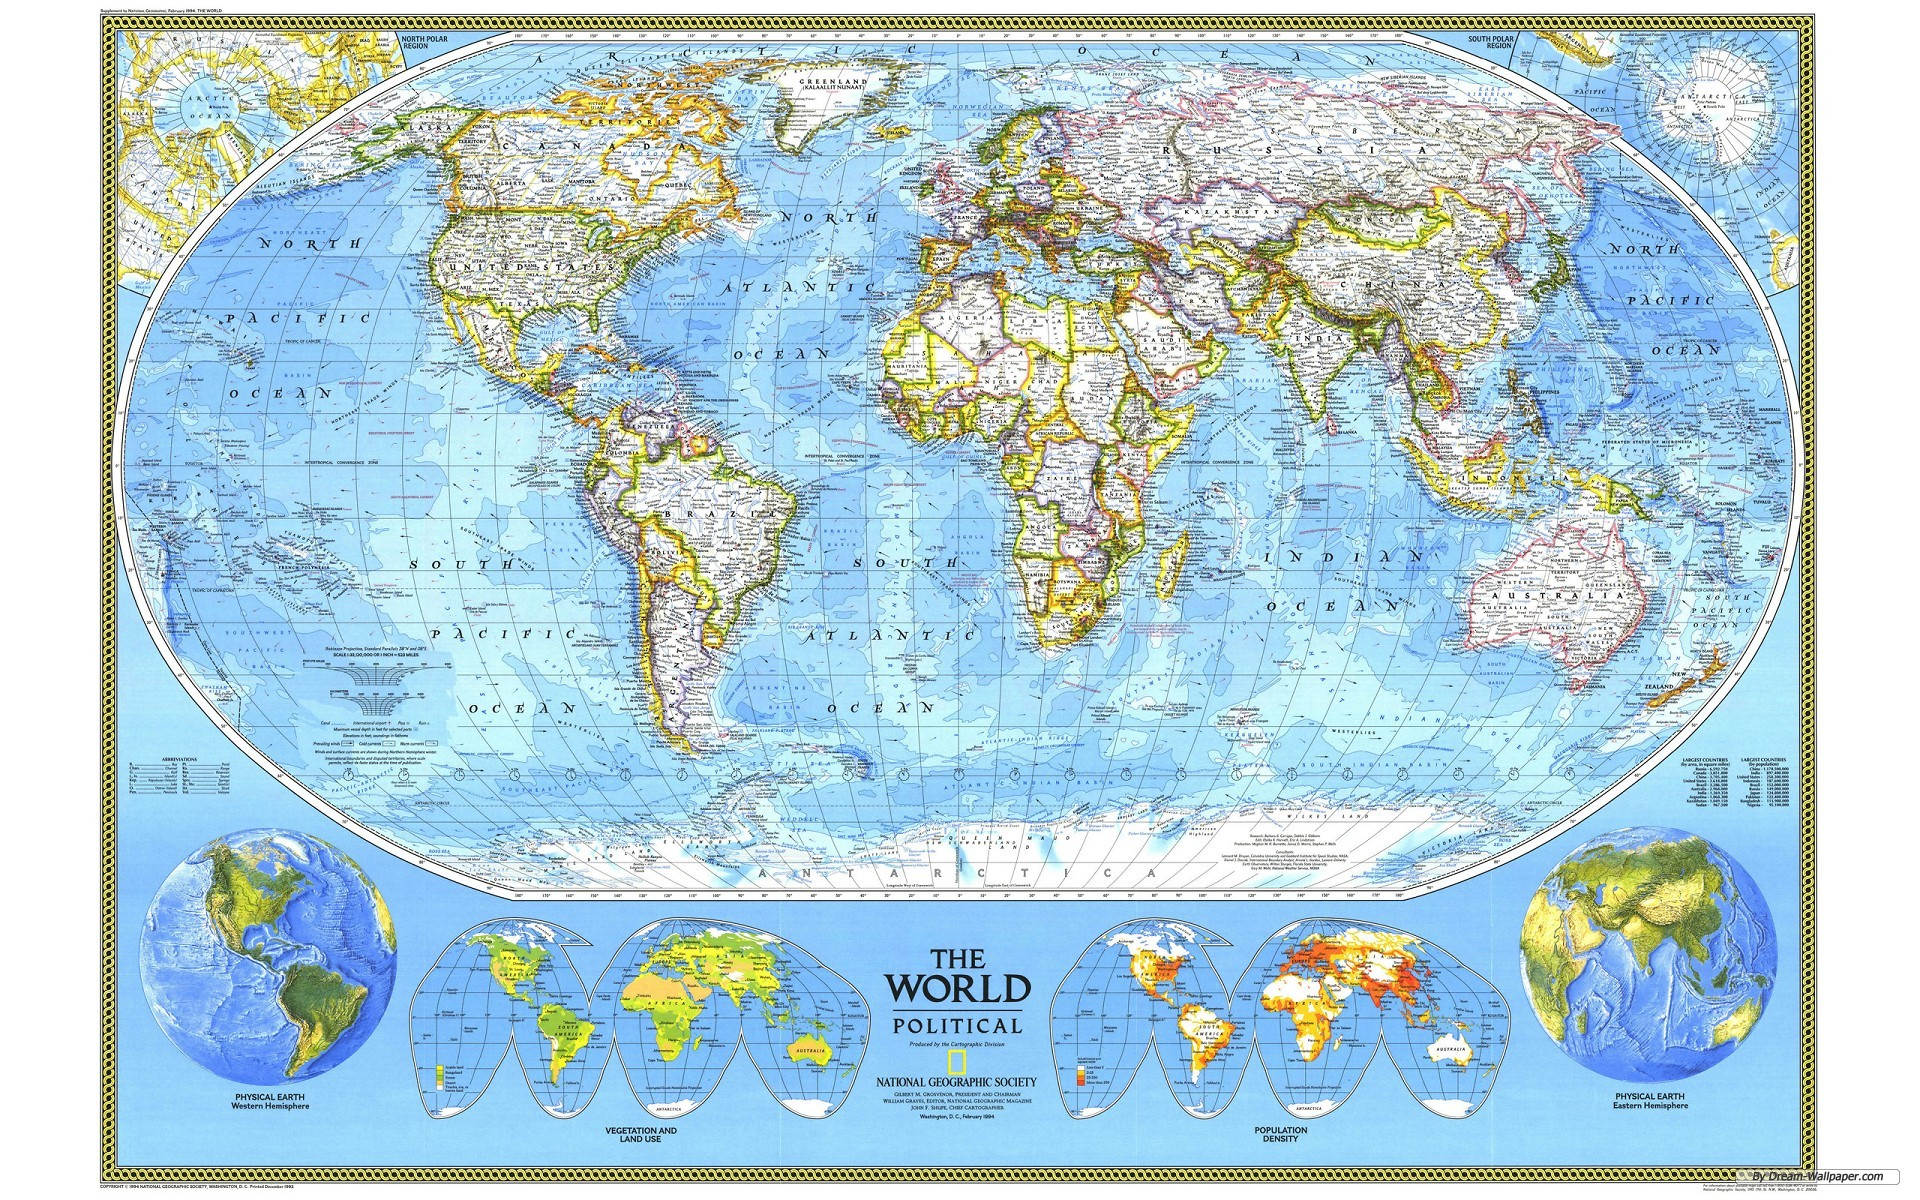 world map image hd wallpaper best of 486475 beautiful desktop background source desktop wallpaper world map